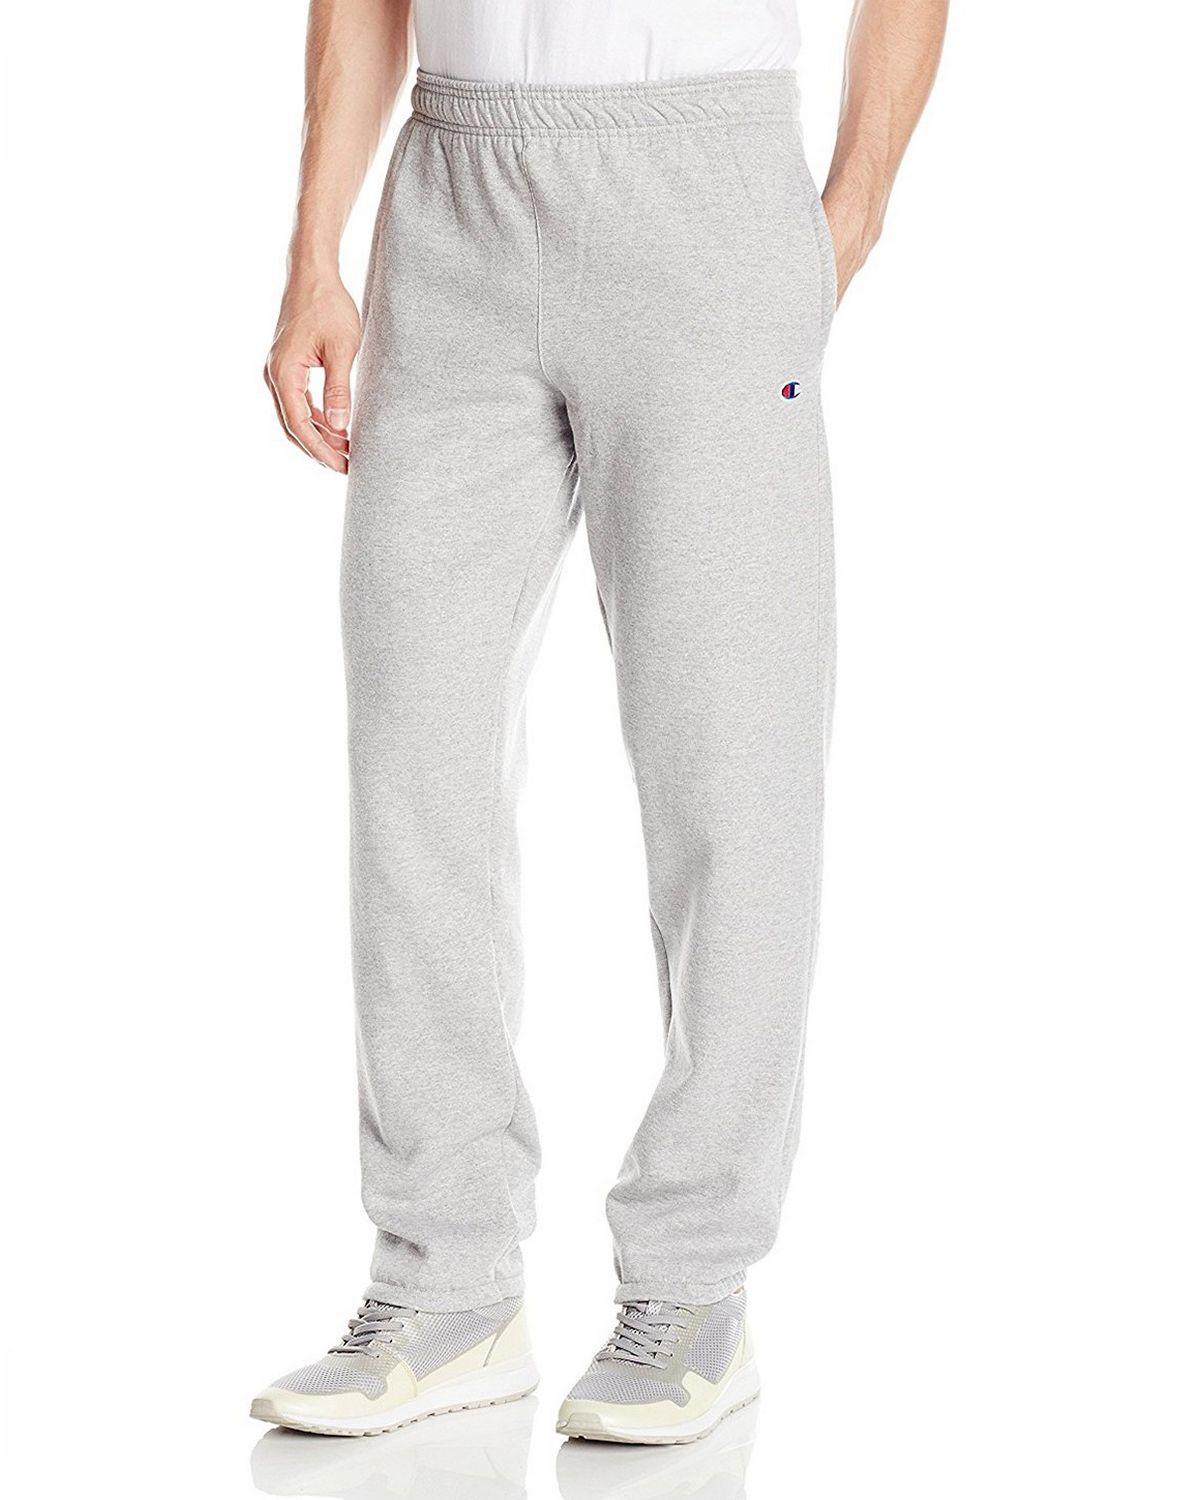 Champion P0894 Mens Powerblend Fleece Pants - Navy - M P0894